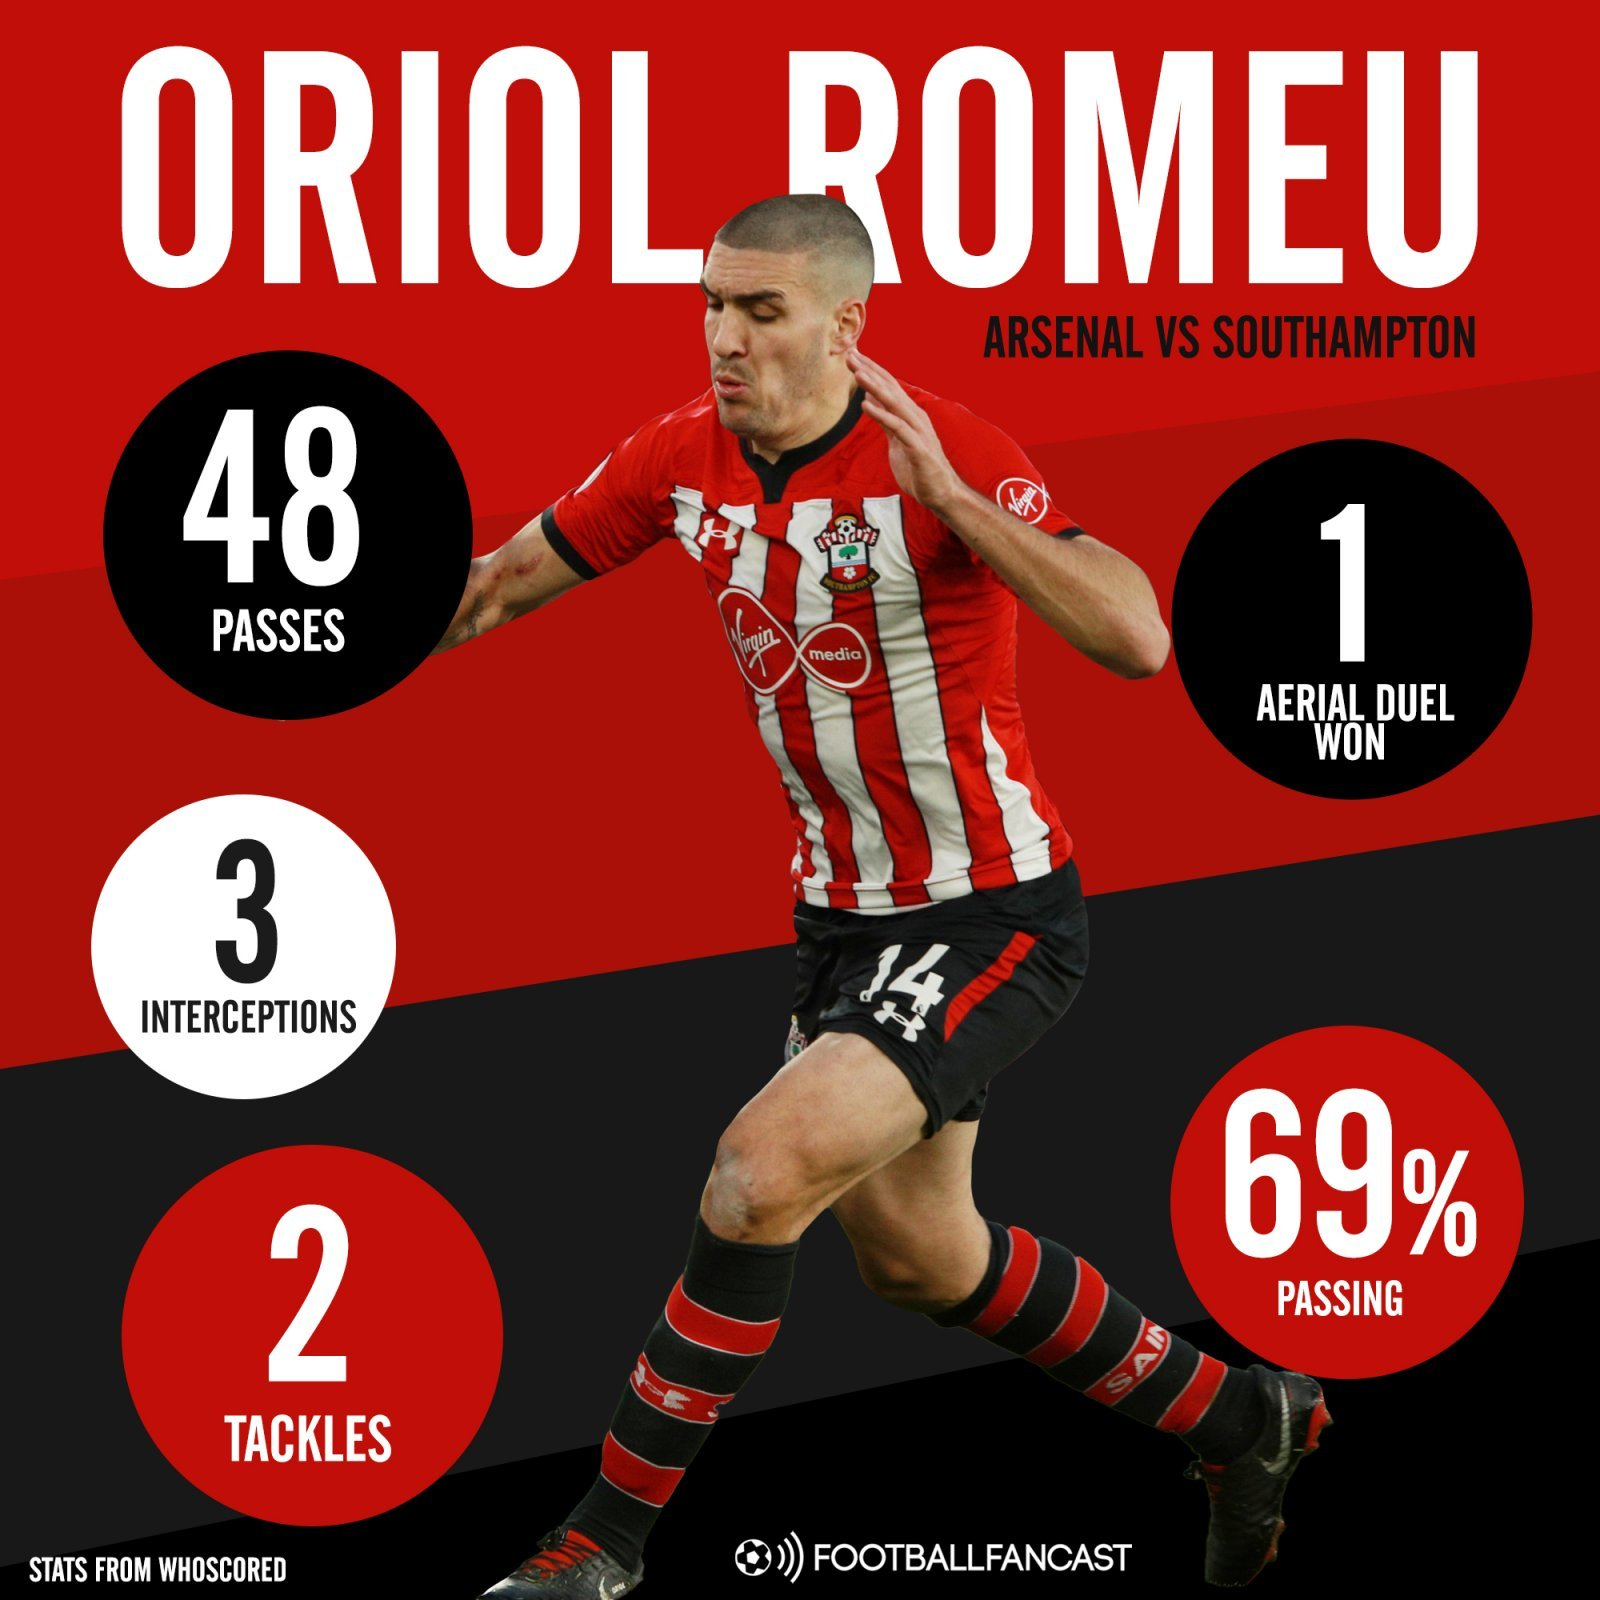 Southampton midfielder Oriol Romeu's stats vs Arsenal